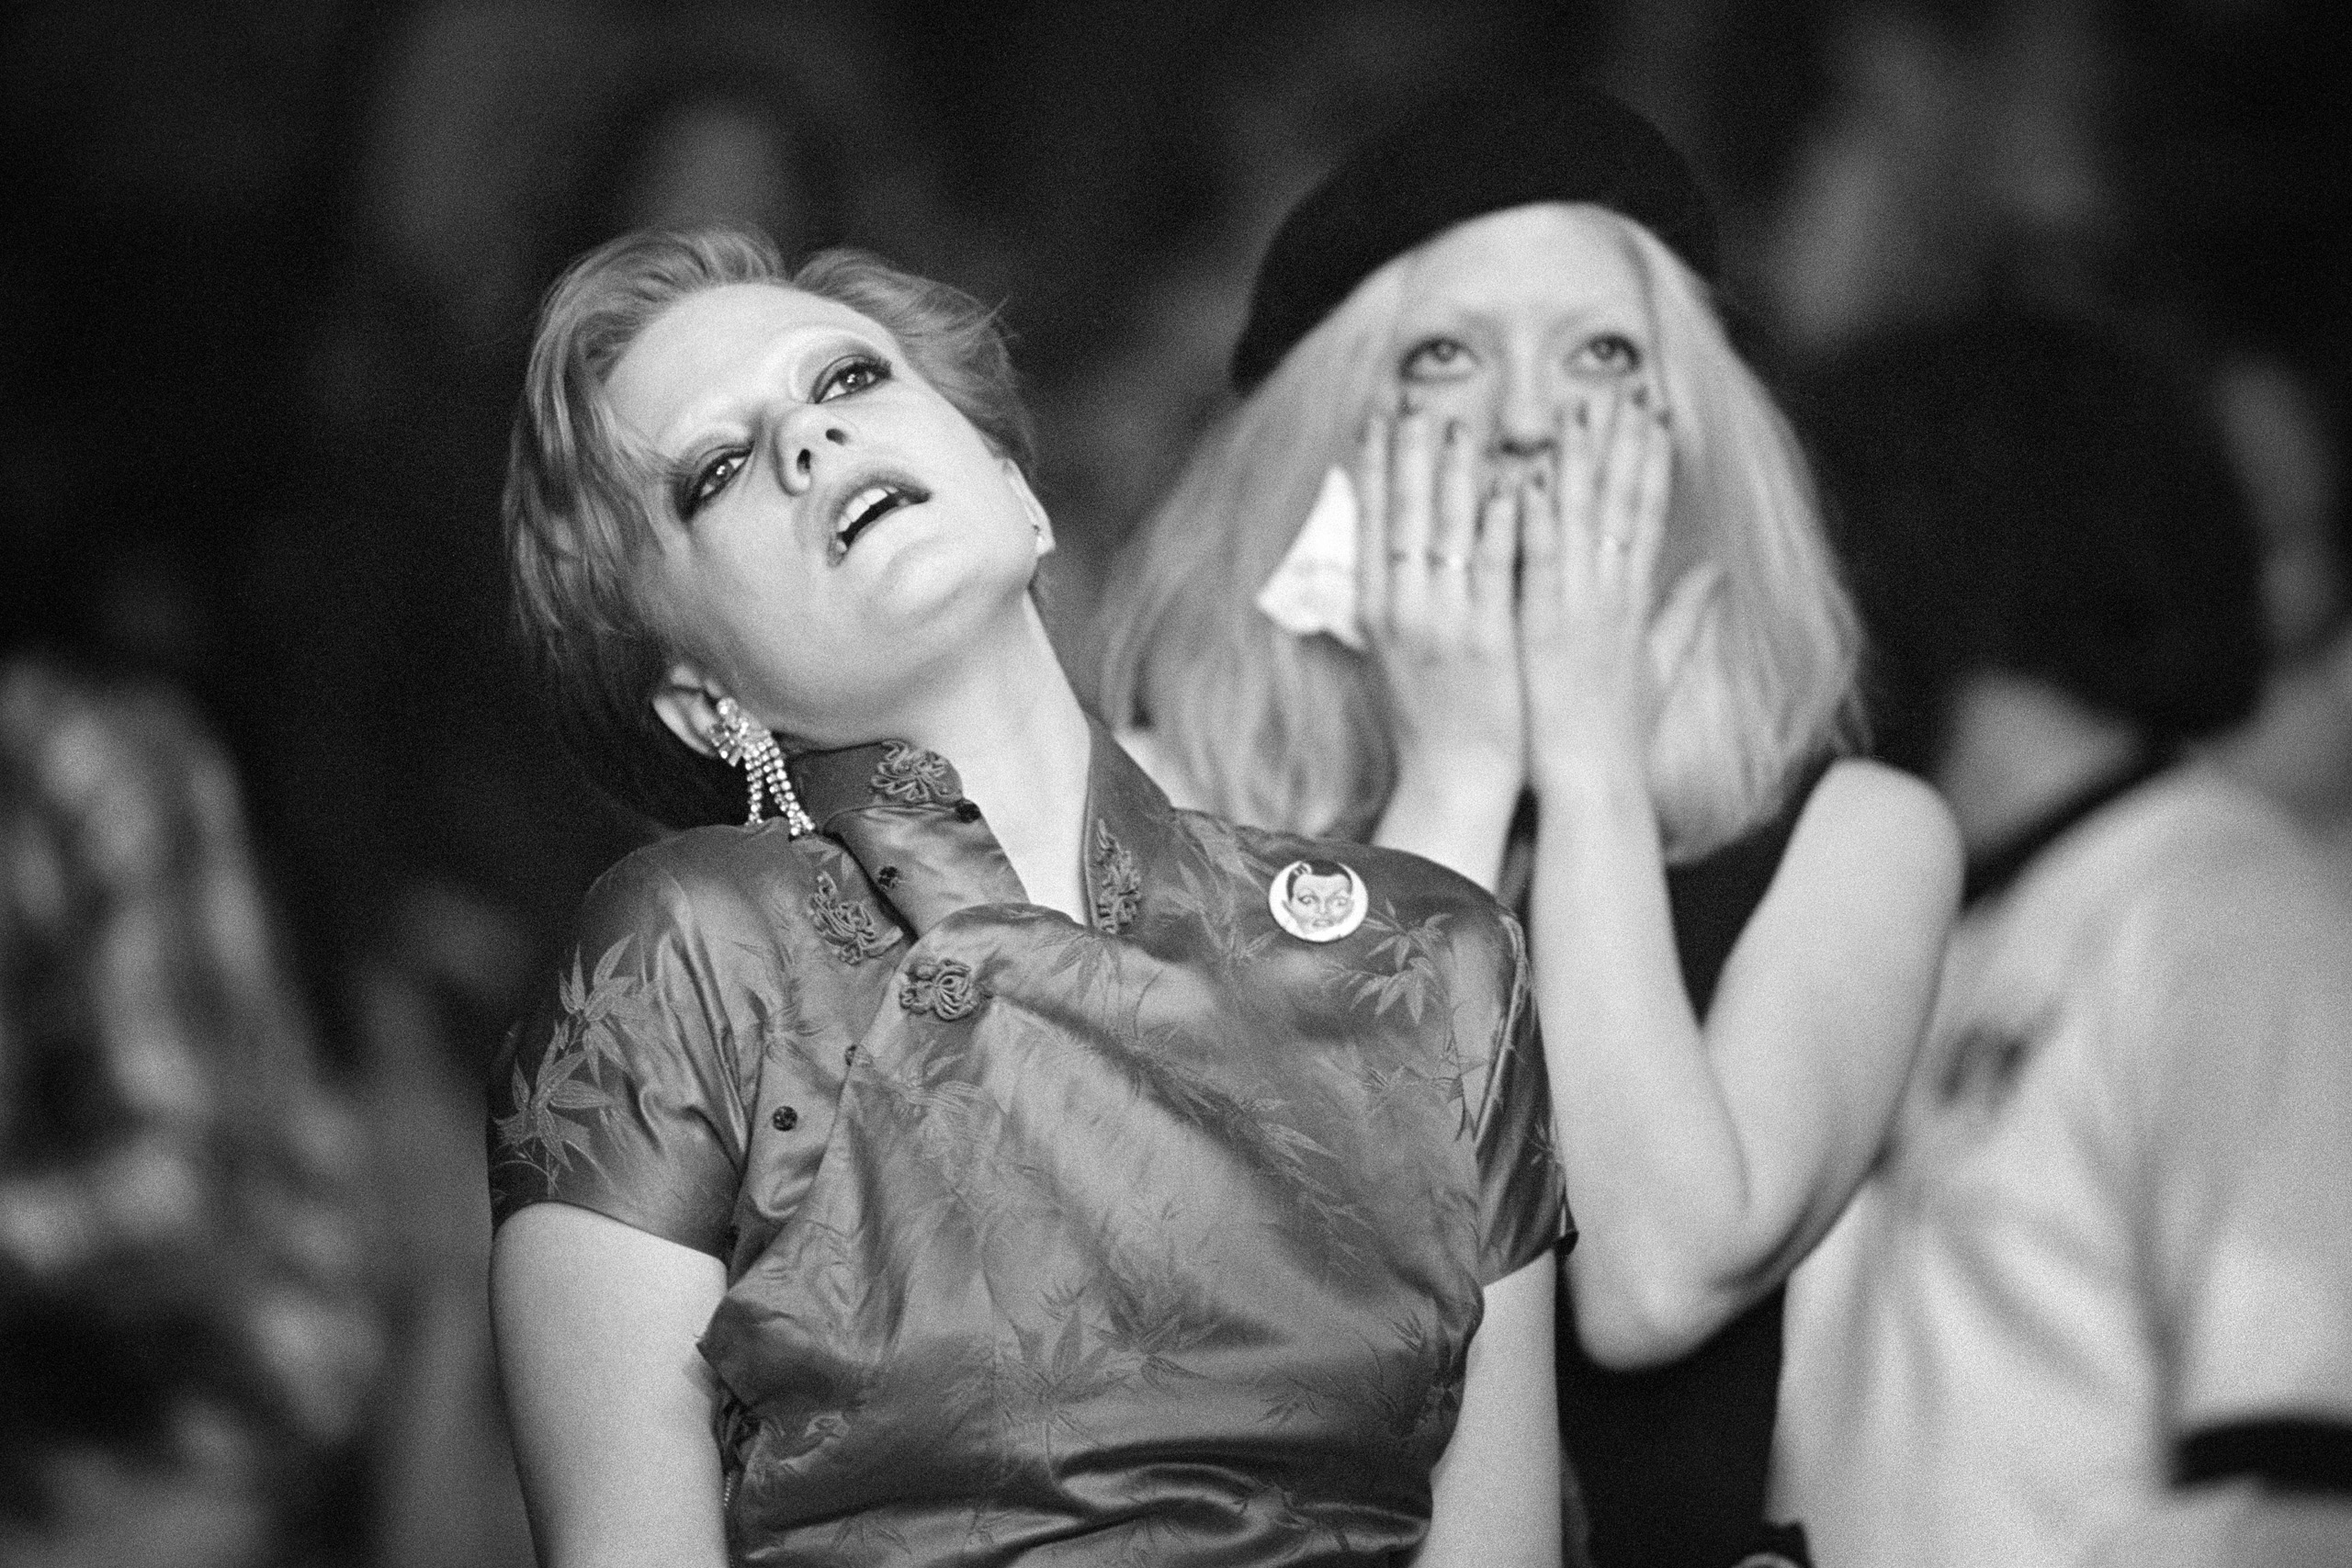 Two super-fans Trixie (L) and Polly (R) who attended nearly every show on the North American Isolar tour, react to Bowie on stage in Los Angeles,1976.